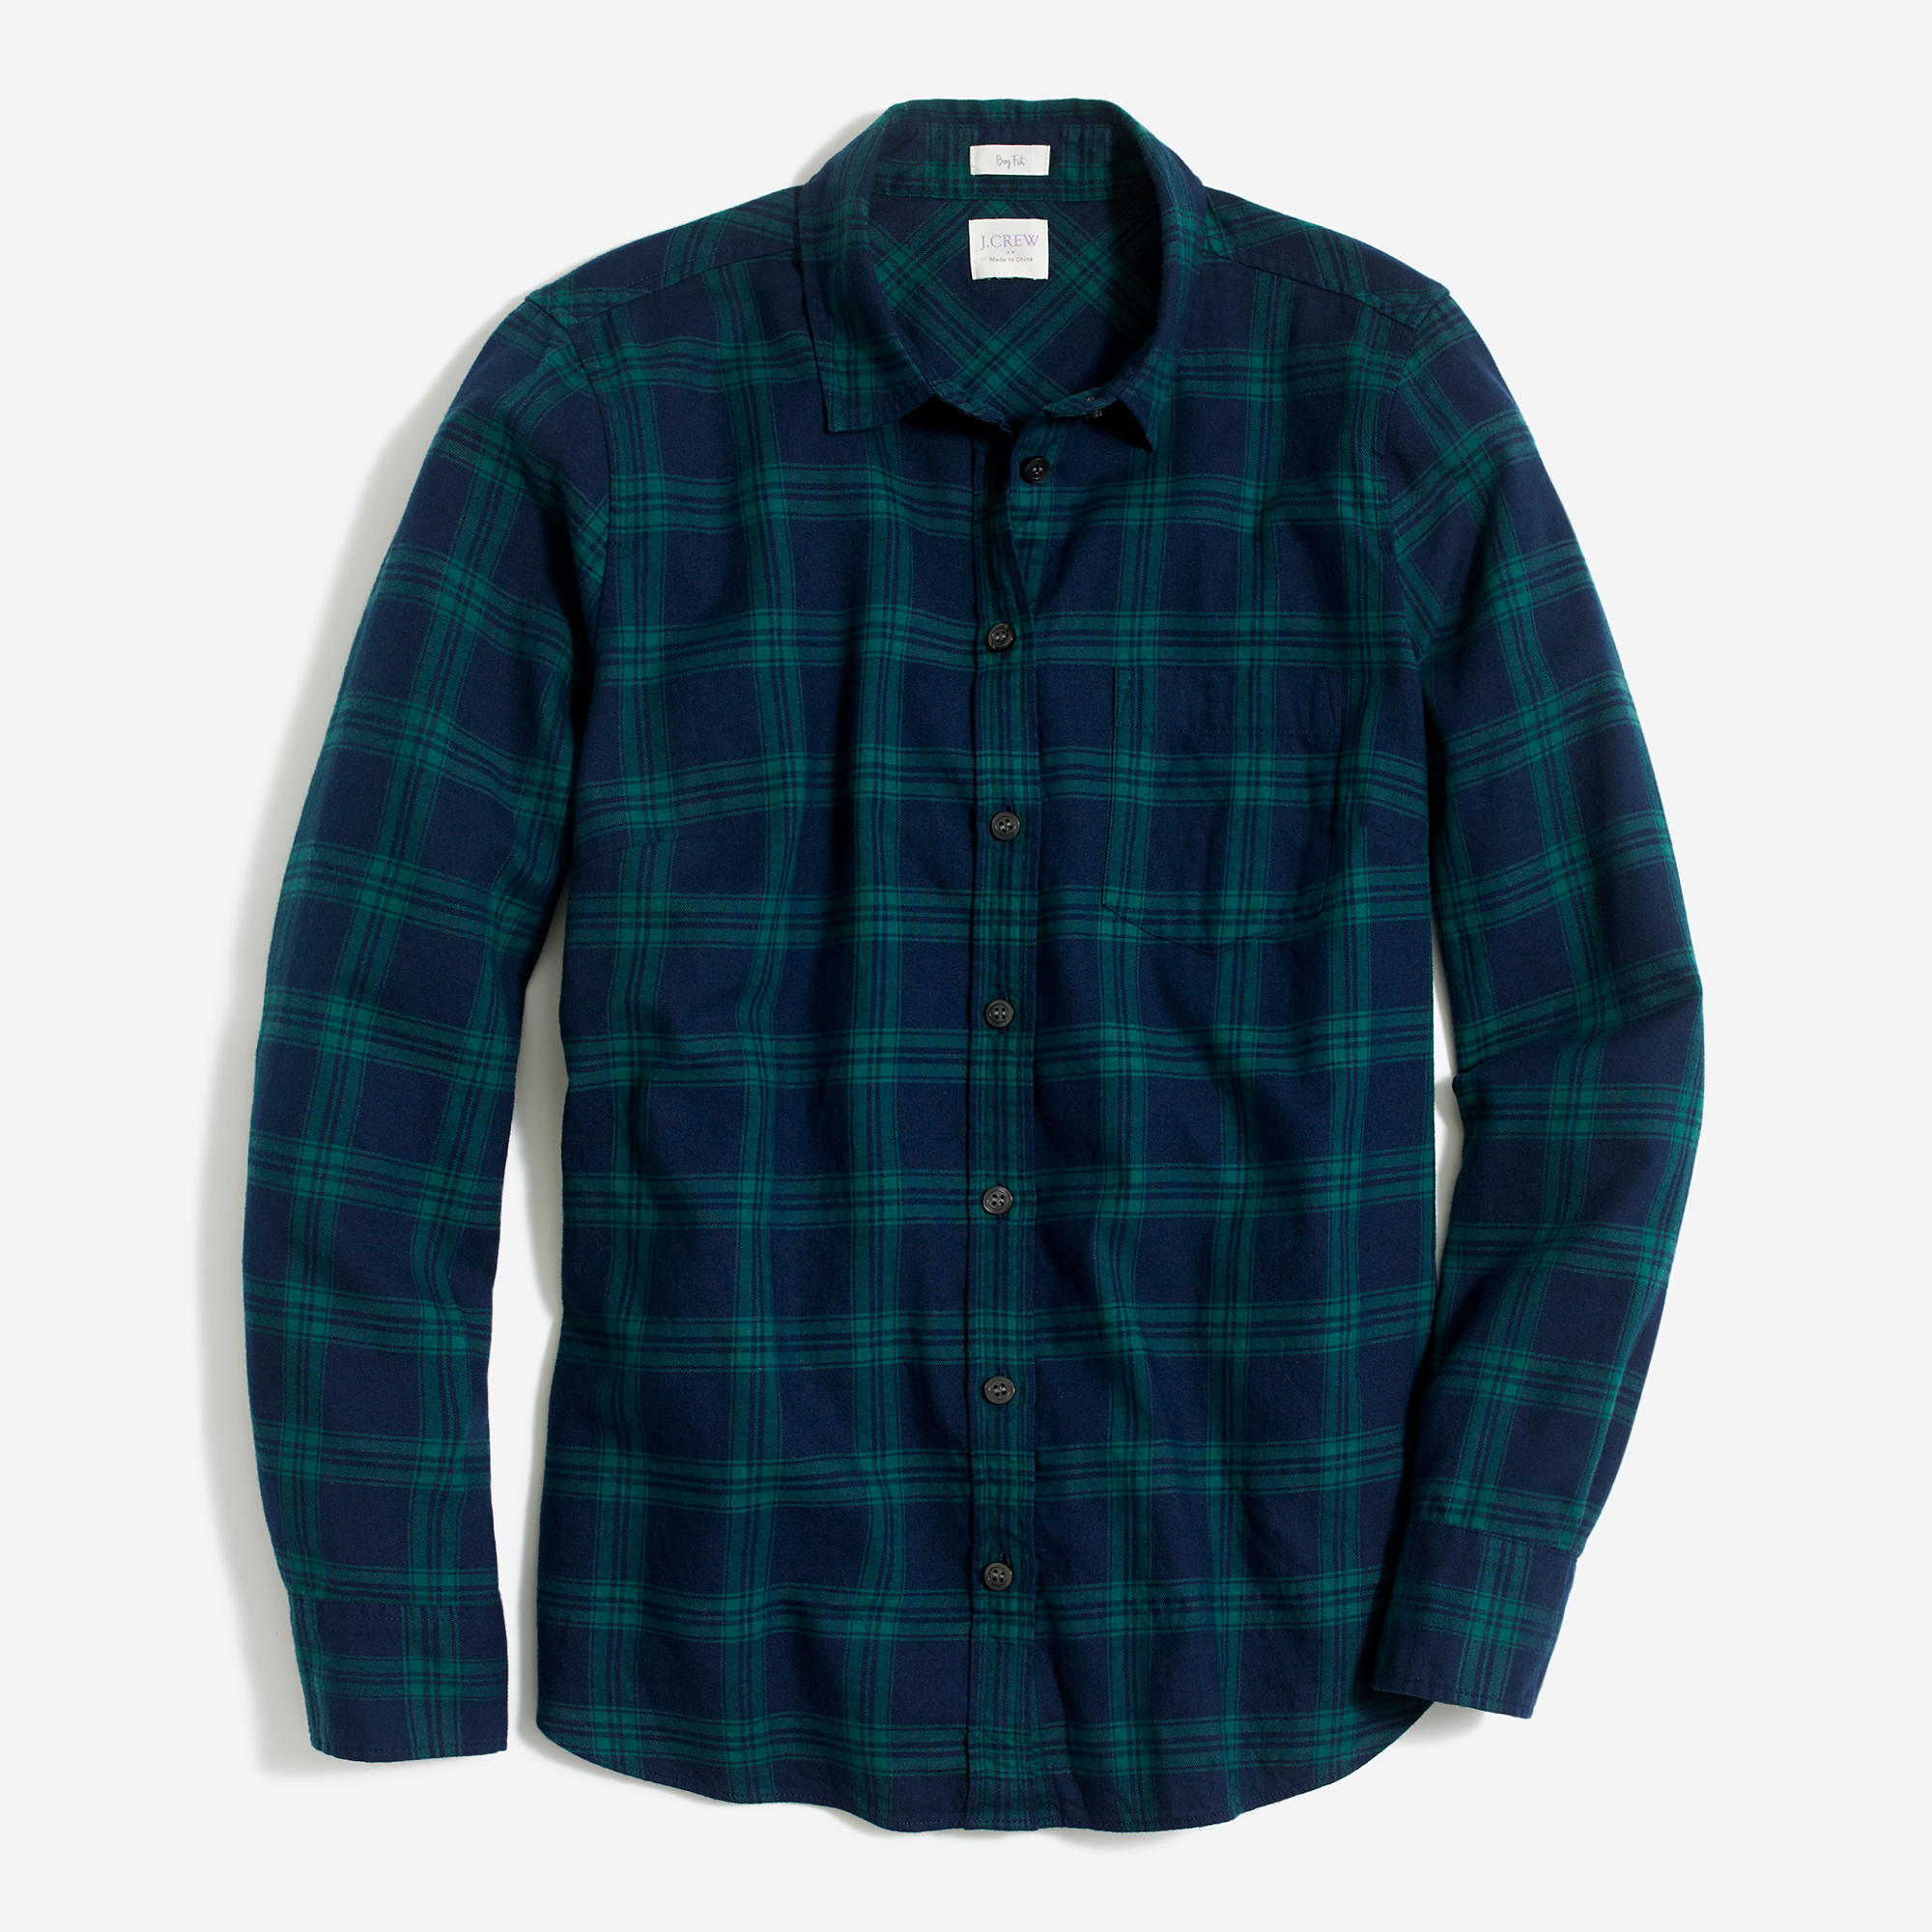 Flannel shirt factorywomen button ups factory for What are flannel shirts made of